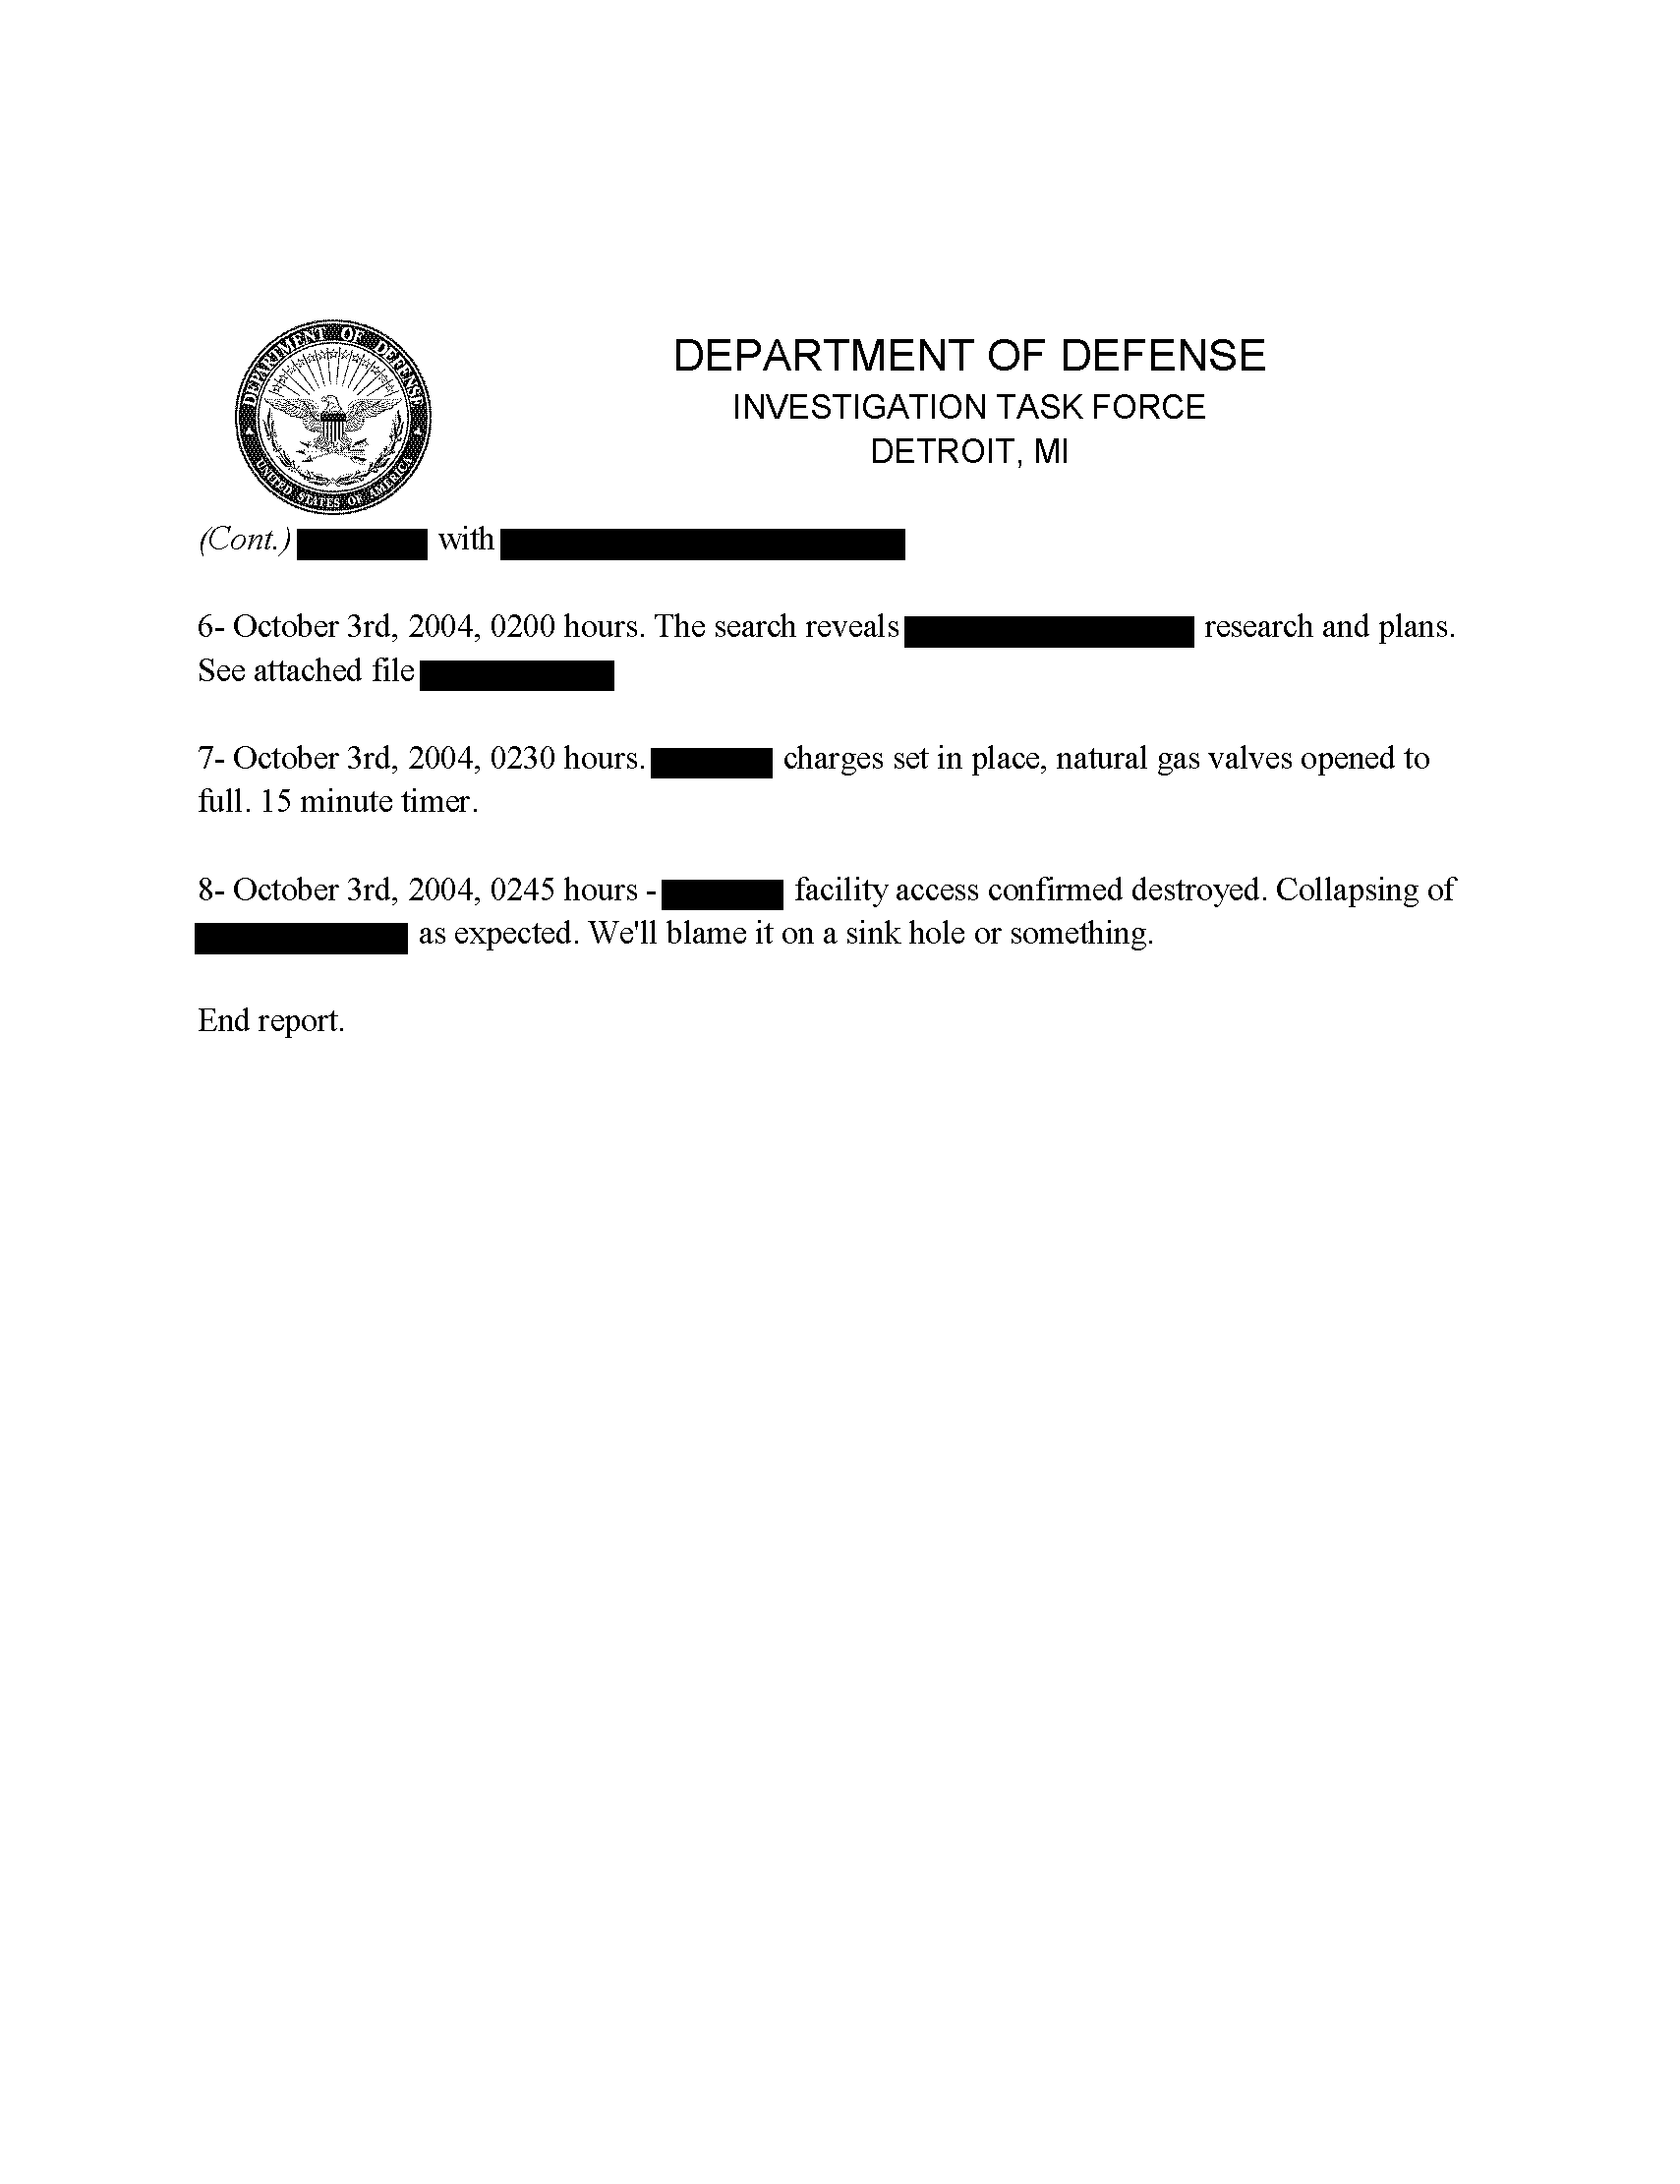 Documents-Redacted_Redacted_2_Page_9.png